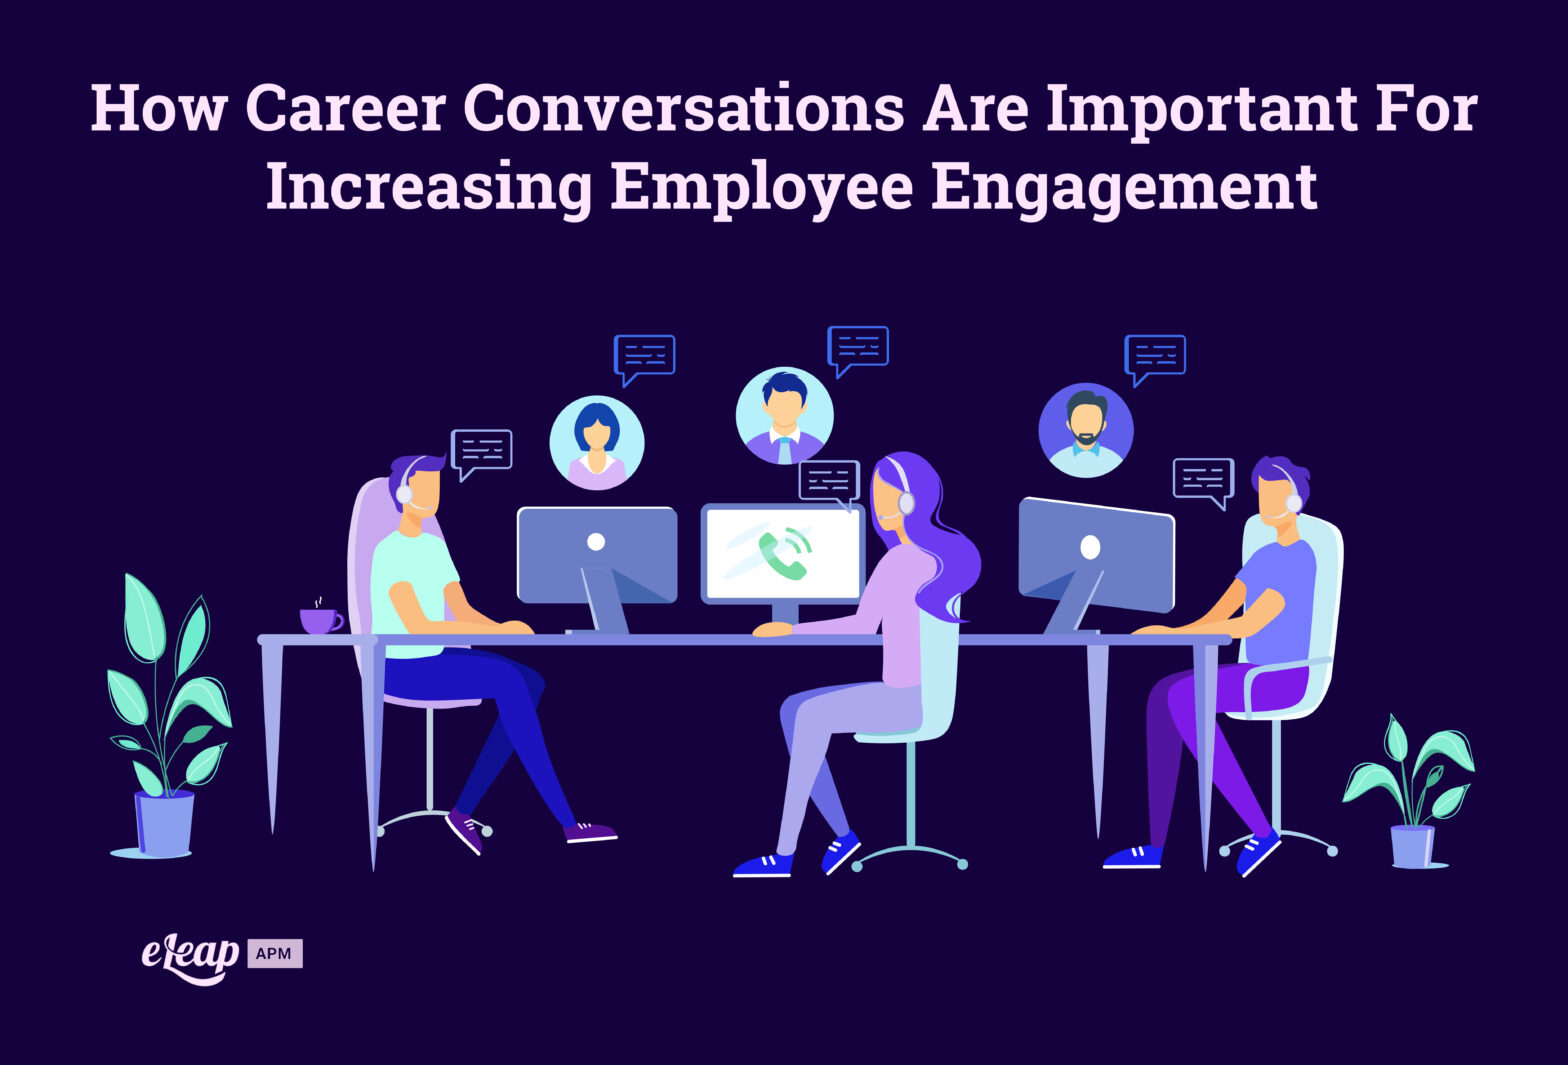 How Career Conversations Are Important For Increasing Employee Engagement